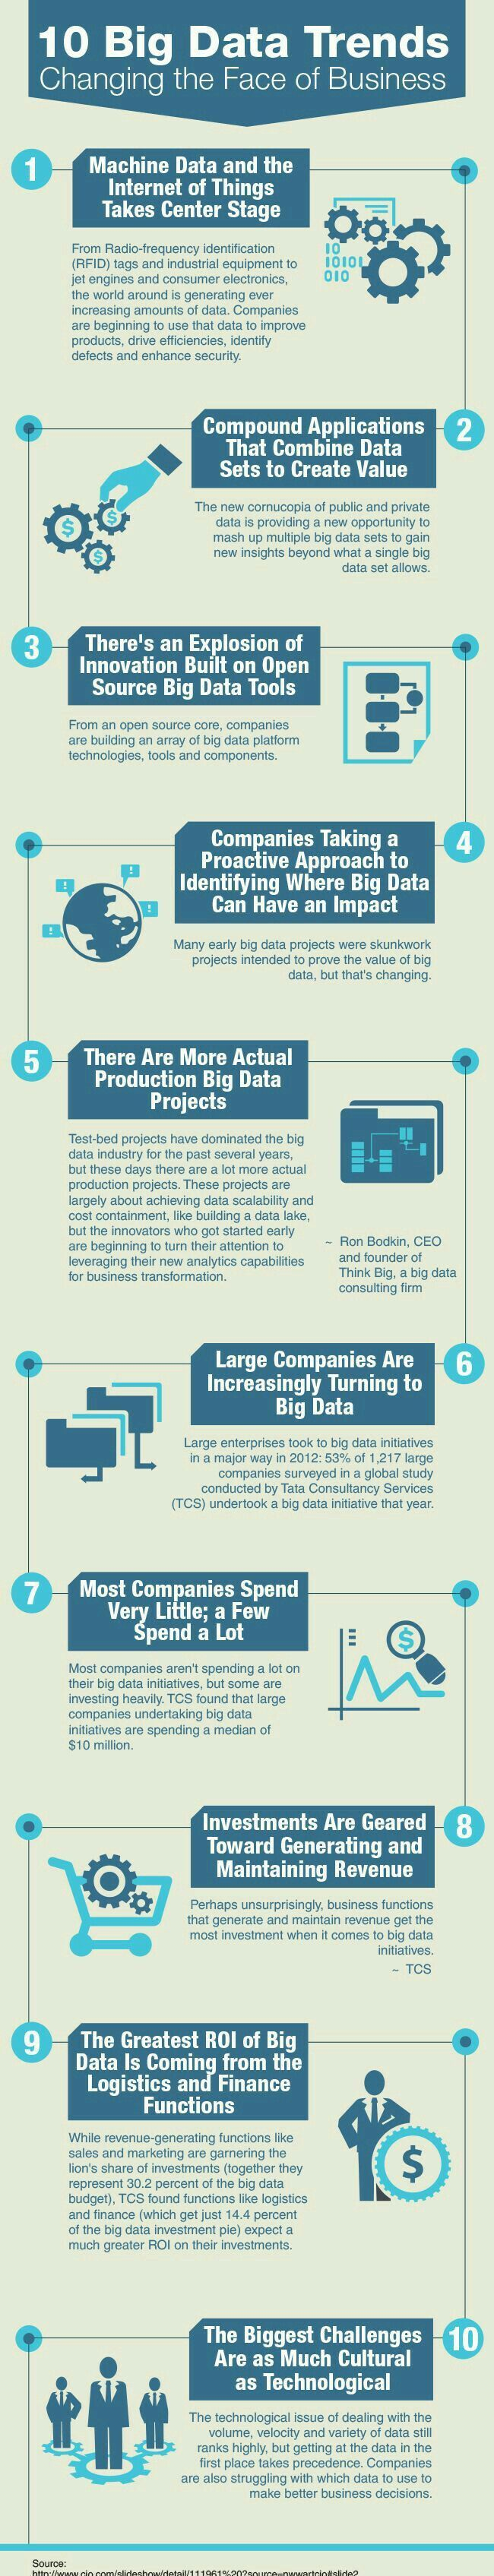 10 BIG DATA TRENDS CHANGING THE FACE OF BUSINESS